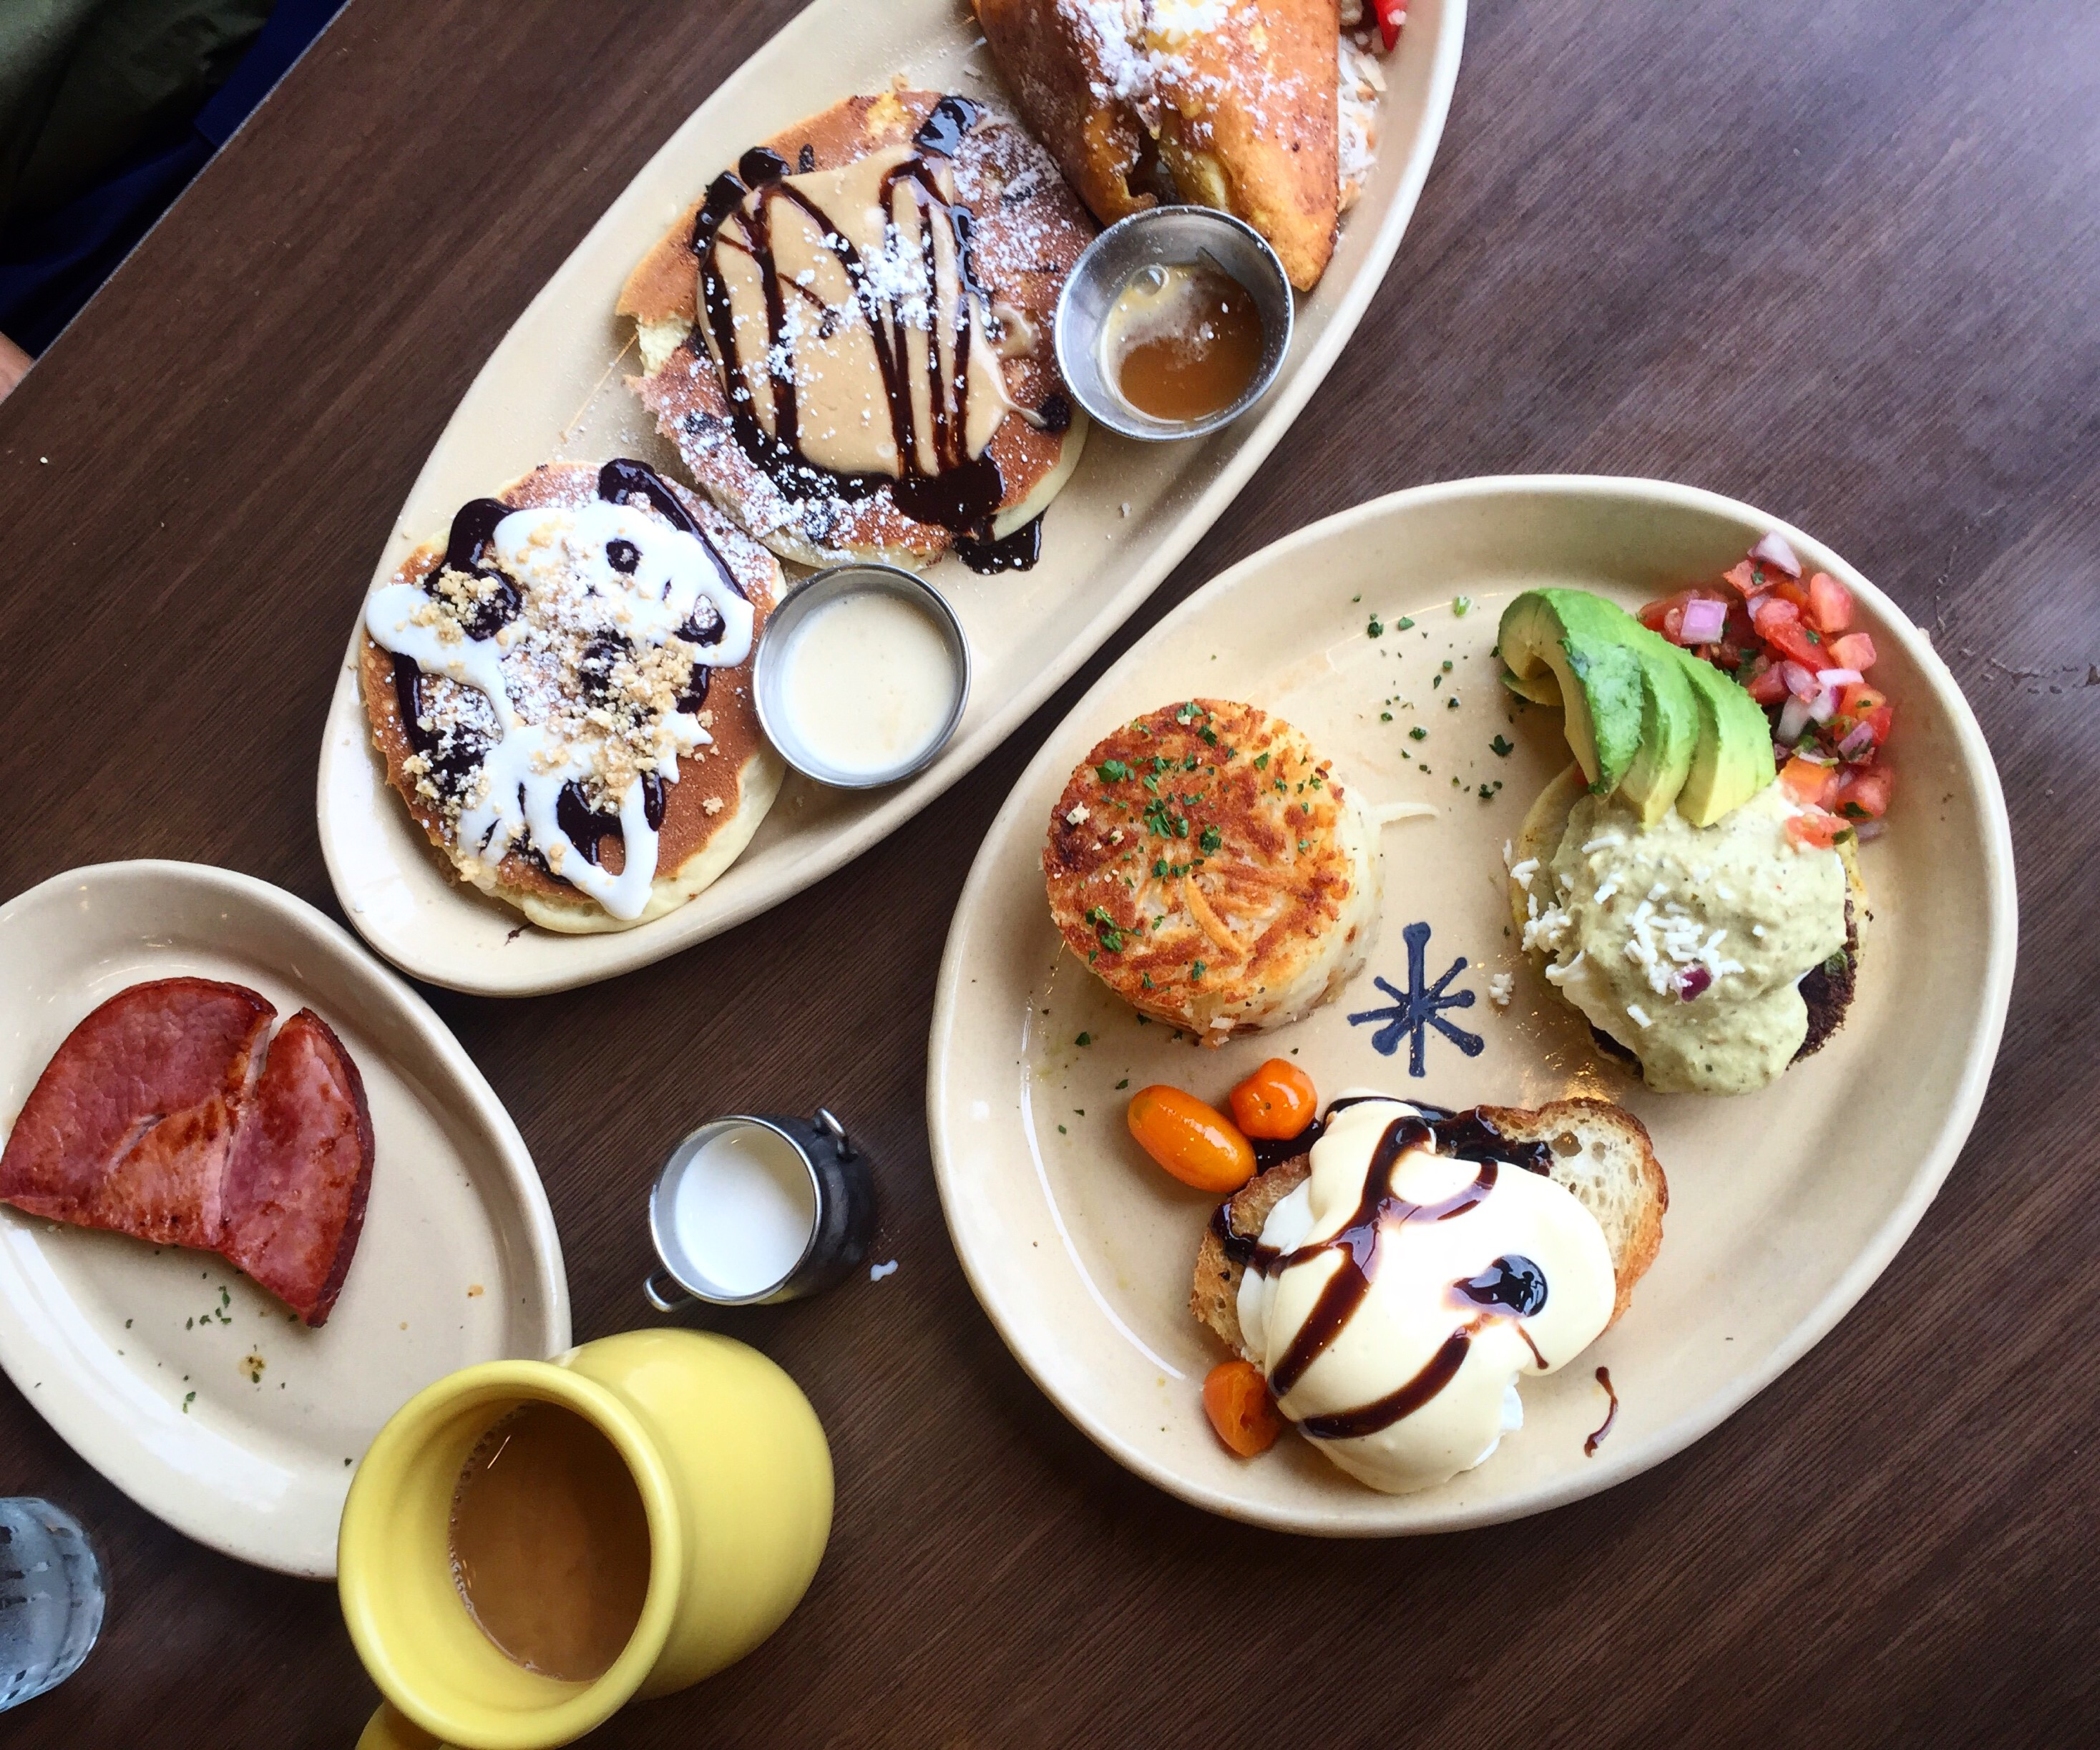 Pancake flight and eggs Benedict from Snooze in Denver (unique things to do in Denver this weekend)